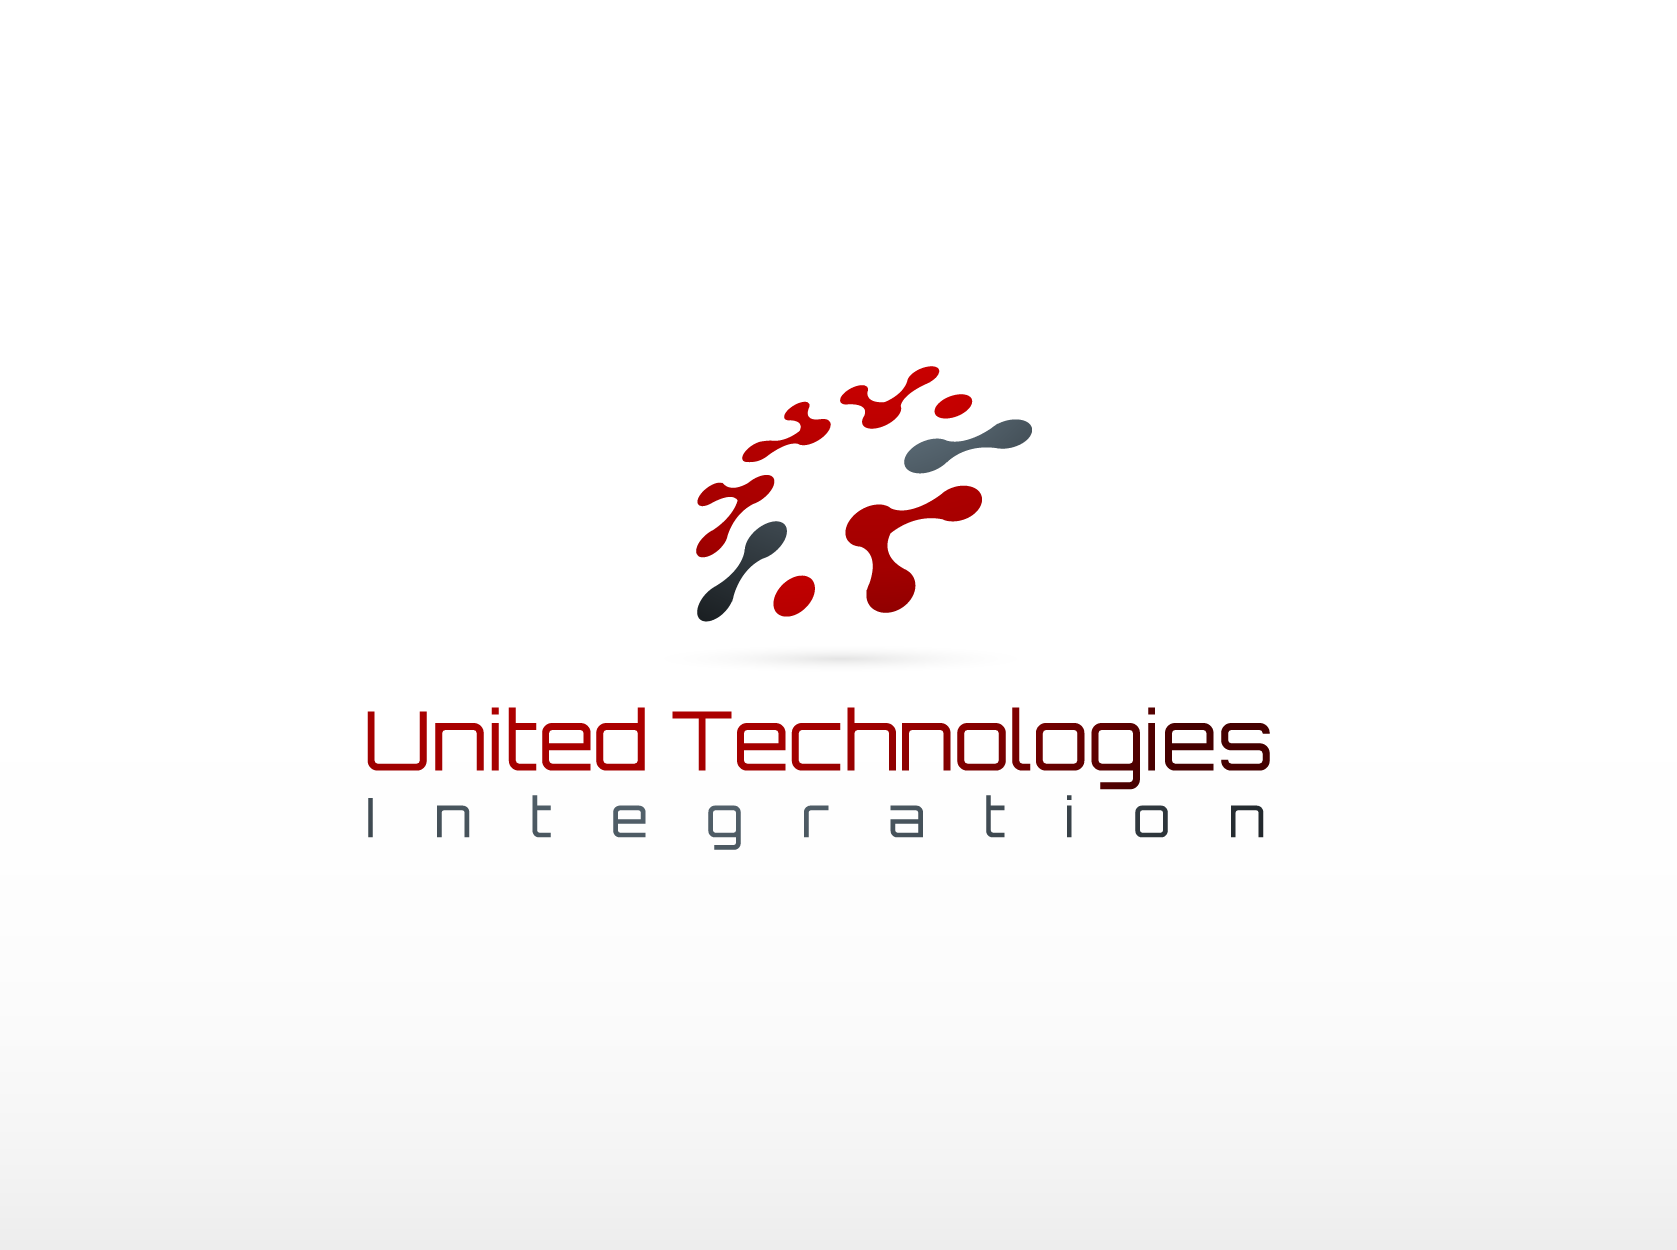 Logo & Stationary for an IT and A/V company - Information Technology Logo